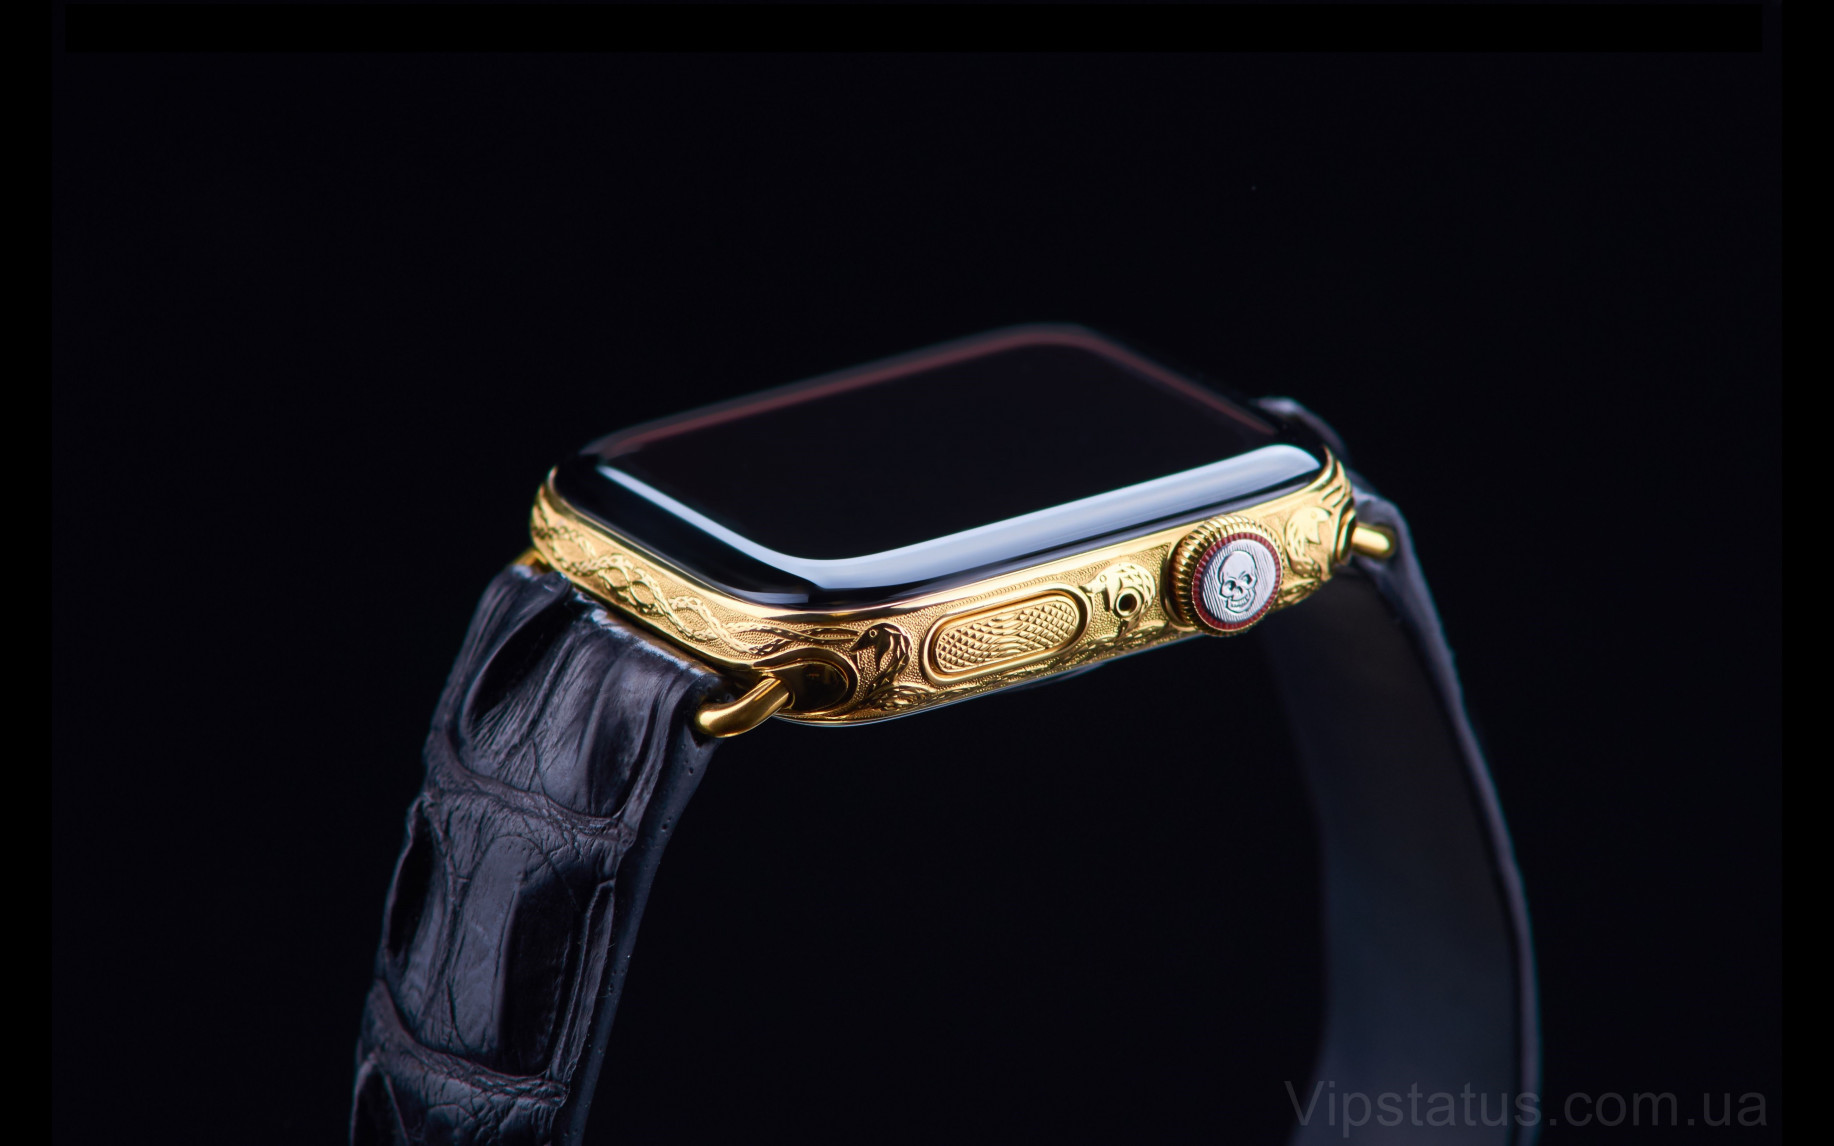 Элитный Skull 666 Gold Apple Watch 5 Skull 666 Gold Apple Watch 5 Sapphire изображение 4